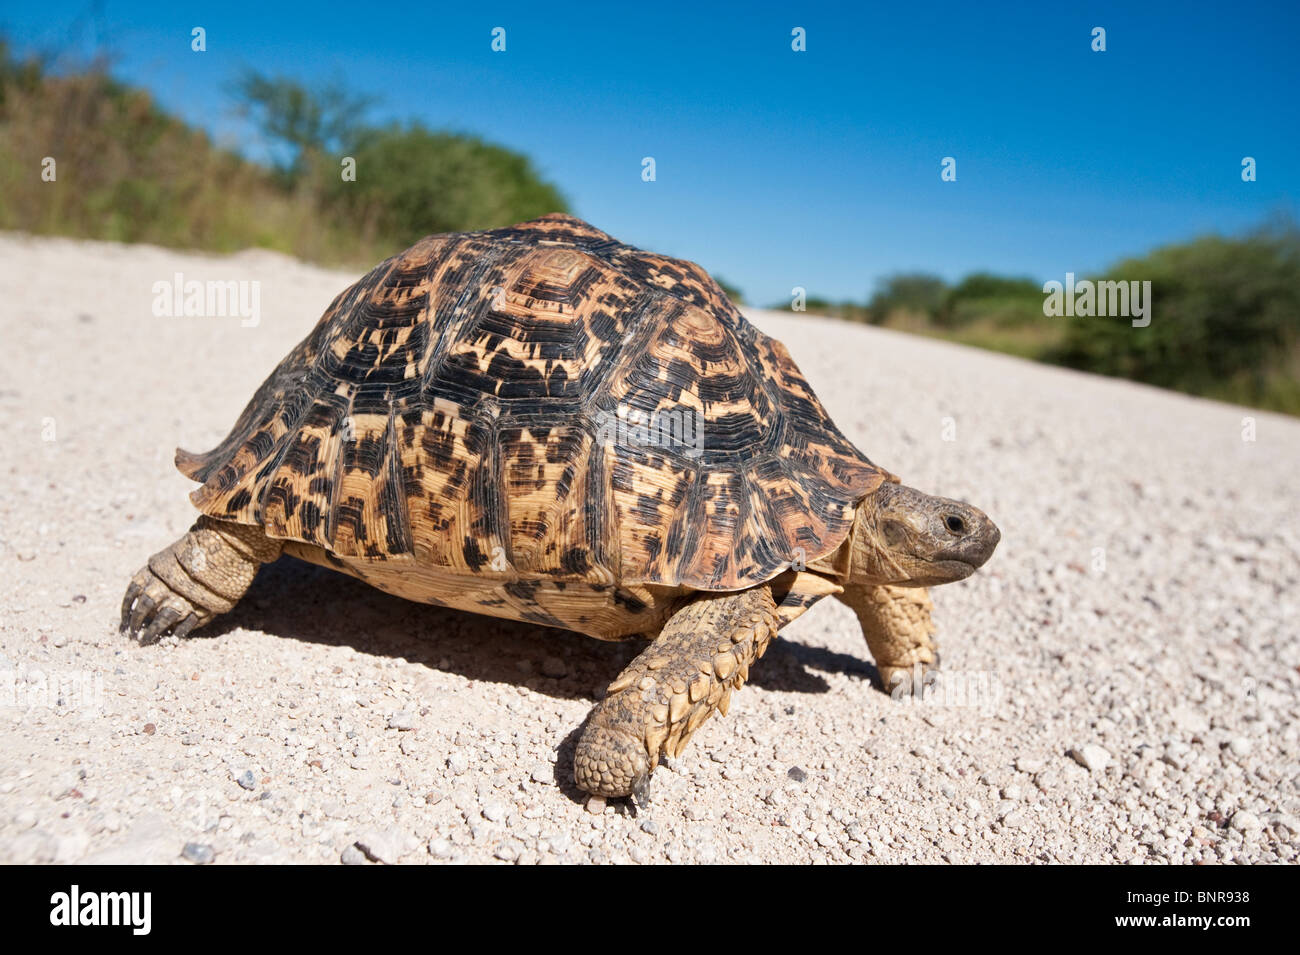 Leopard tortoise Geochelone pardalis crossing a road in Etosha Nationalpark Namibia - Stock Image